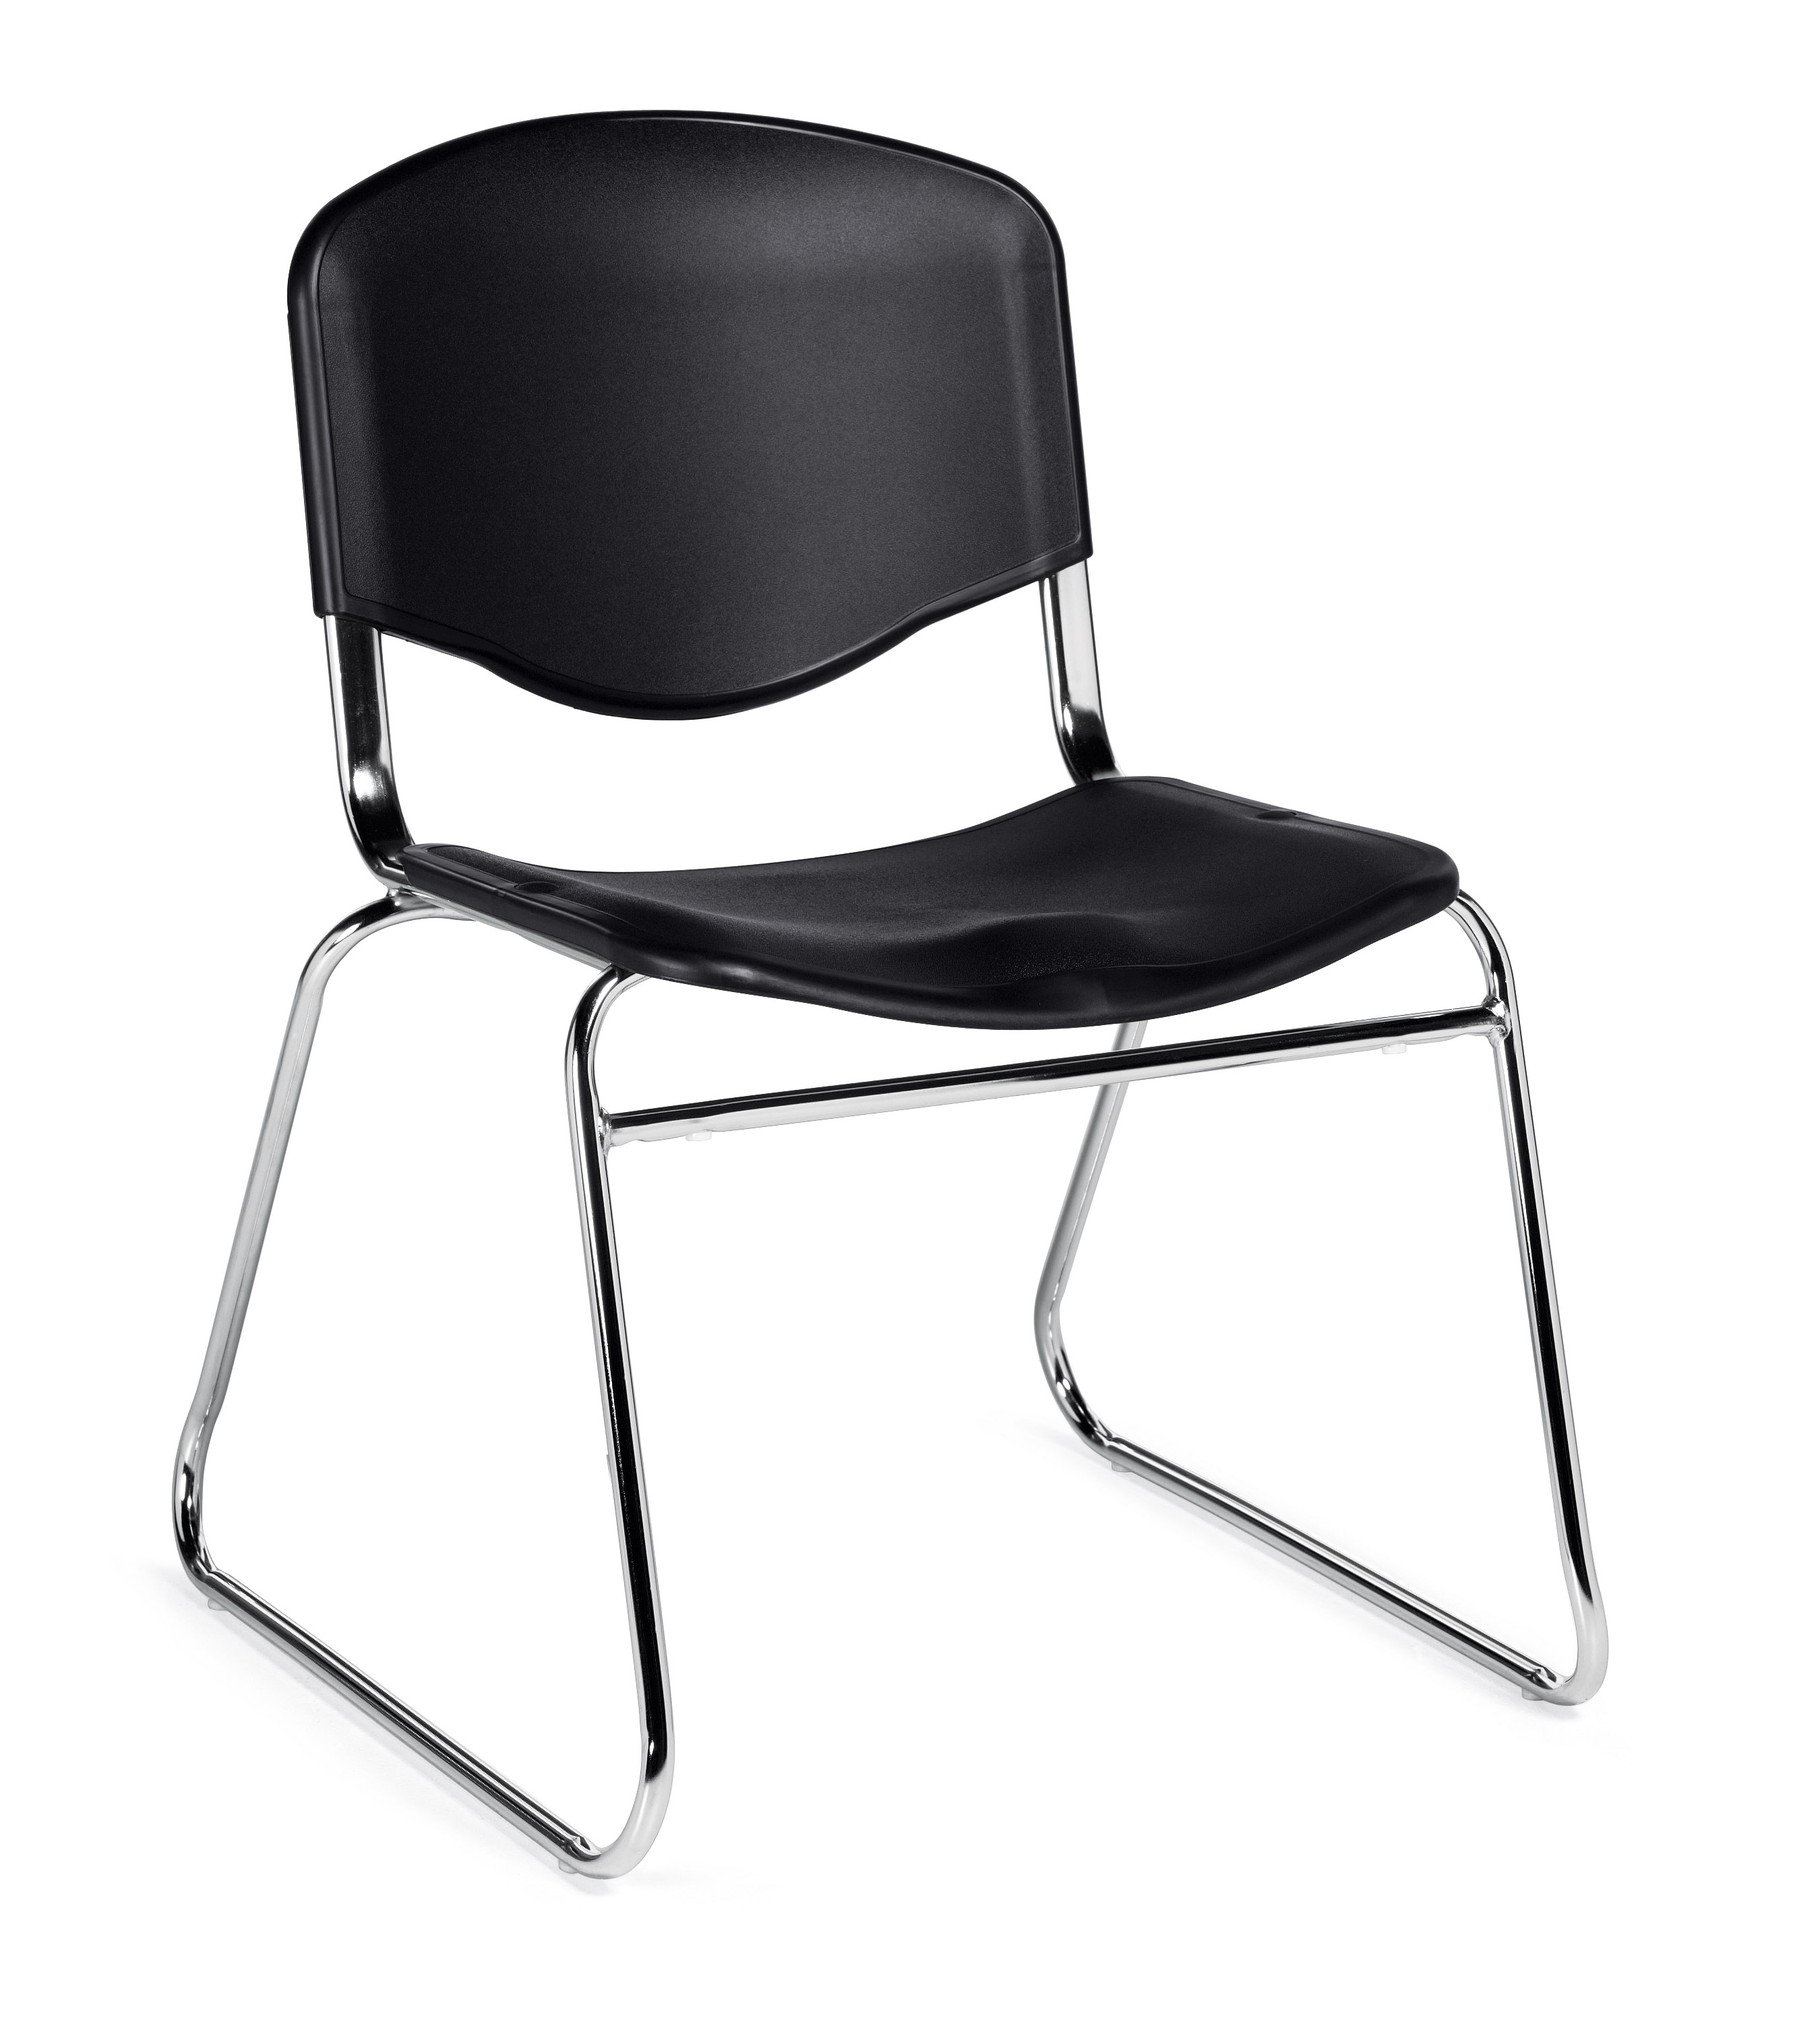 chairs-for-office-stackable-office-chairs.jpg